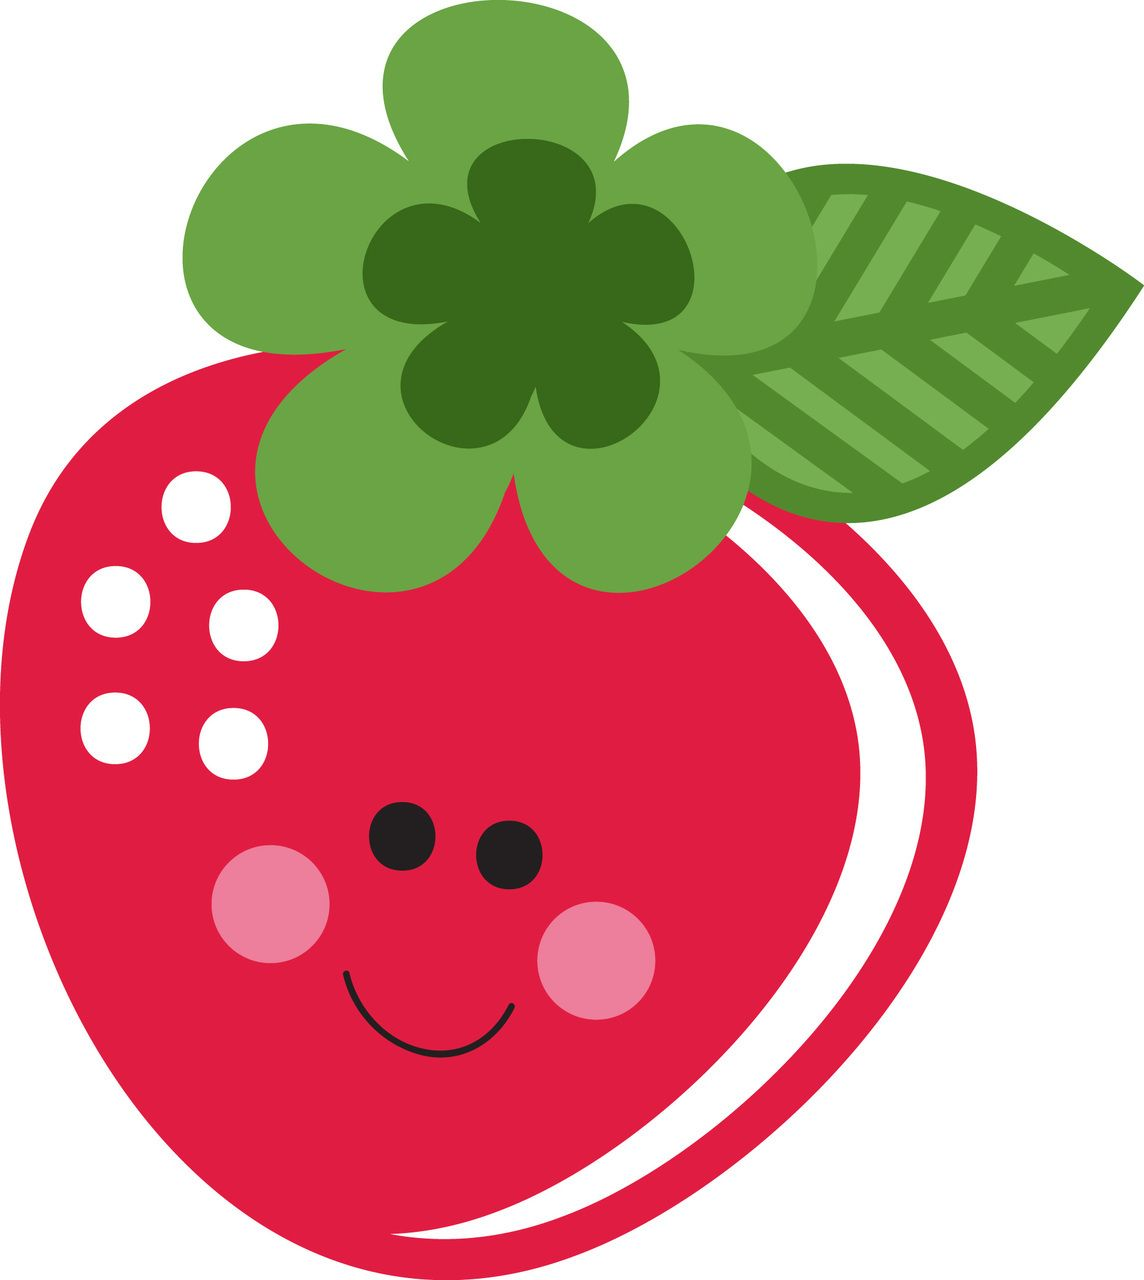 strawberry clip art | Strawberry Clipart Strawberry vine ...